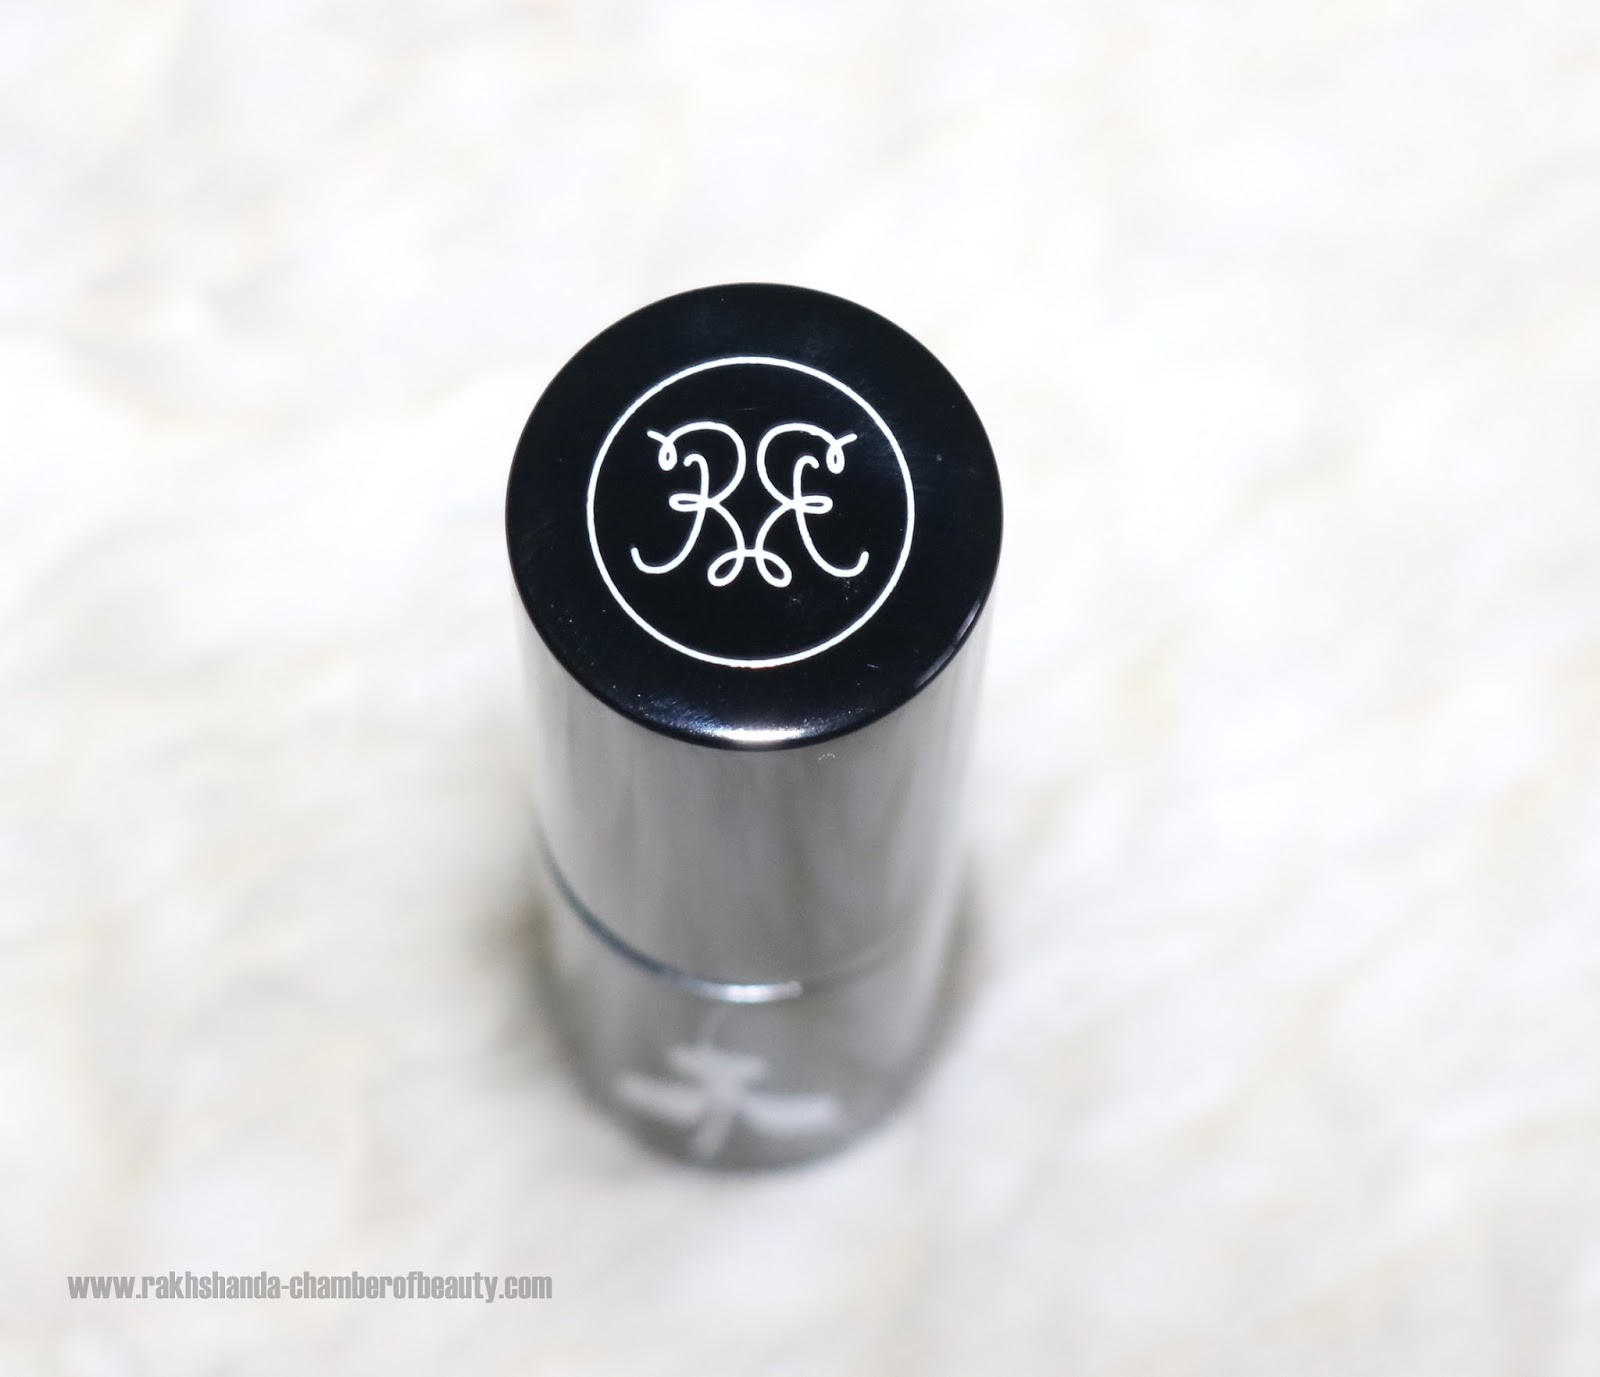 Best sheer lipstick, Indian beauty blogger, lipsticks, review, review and swatches, Rouge Bunny Rouge Scrumptiously Devious lipstick review, Rouge Bunny Rouge Color Burst lipstick review,